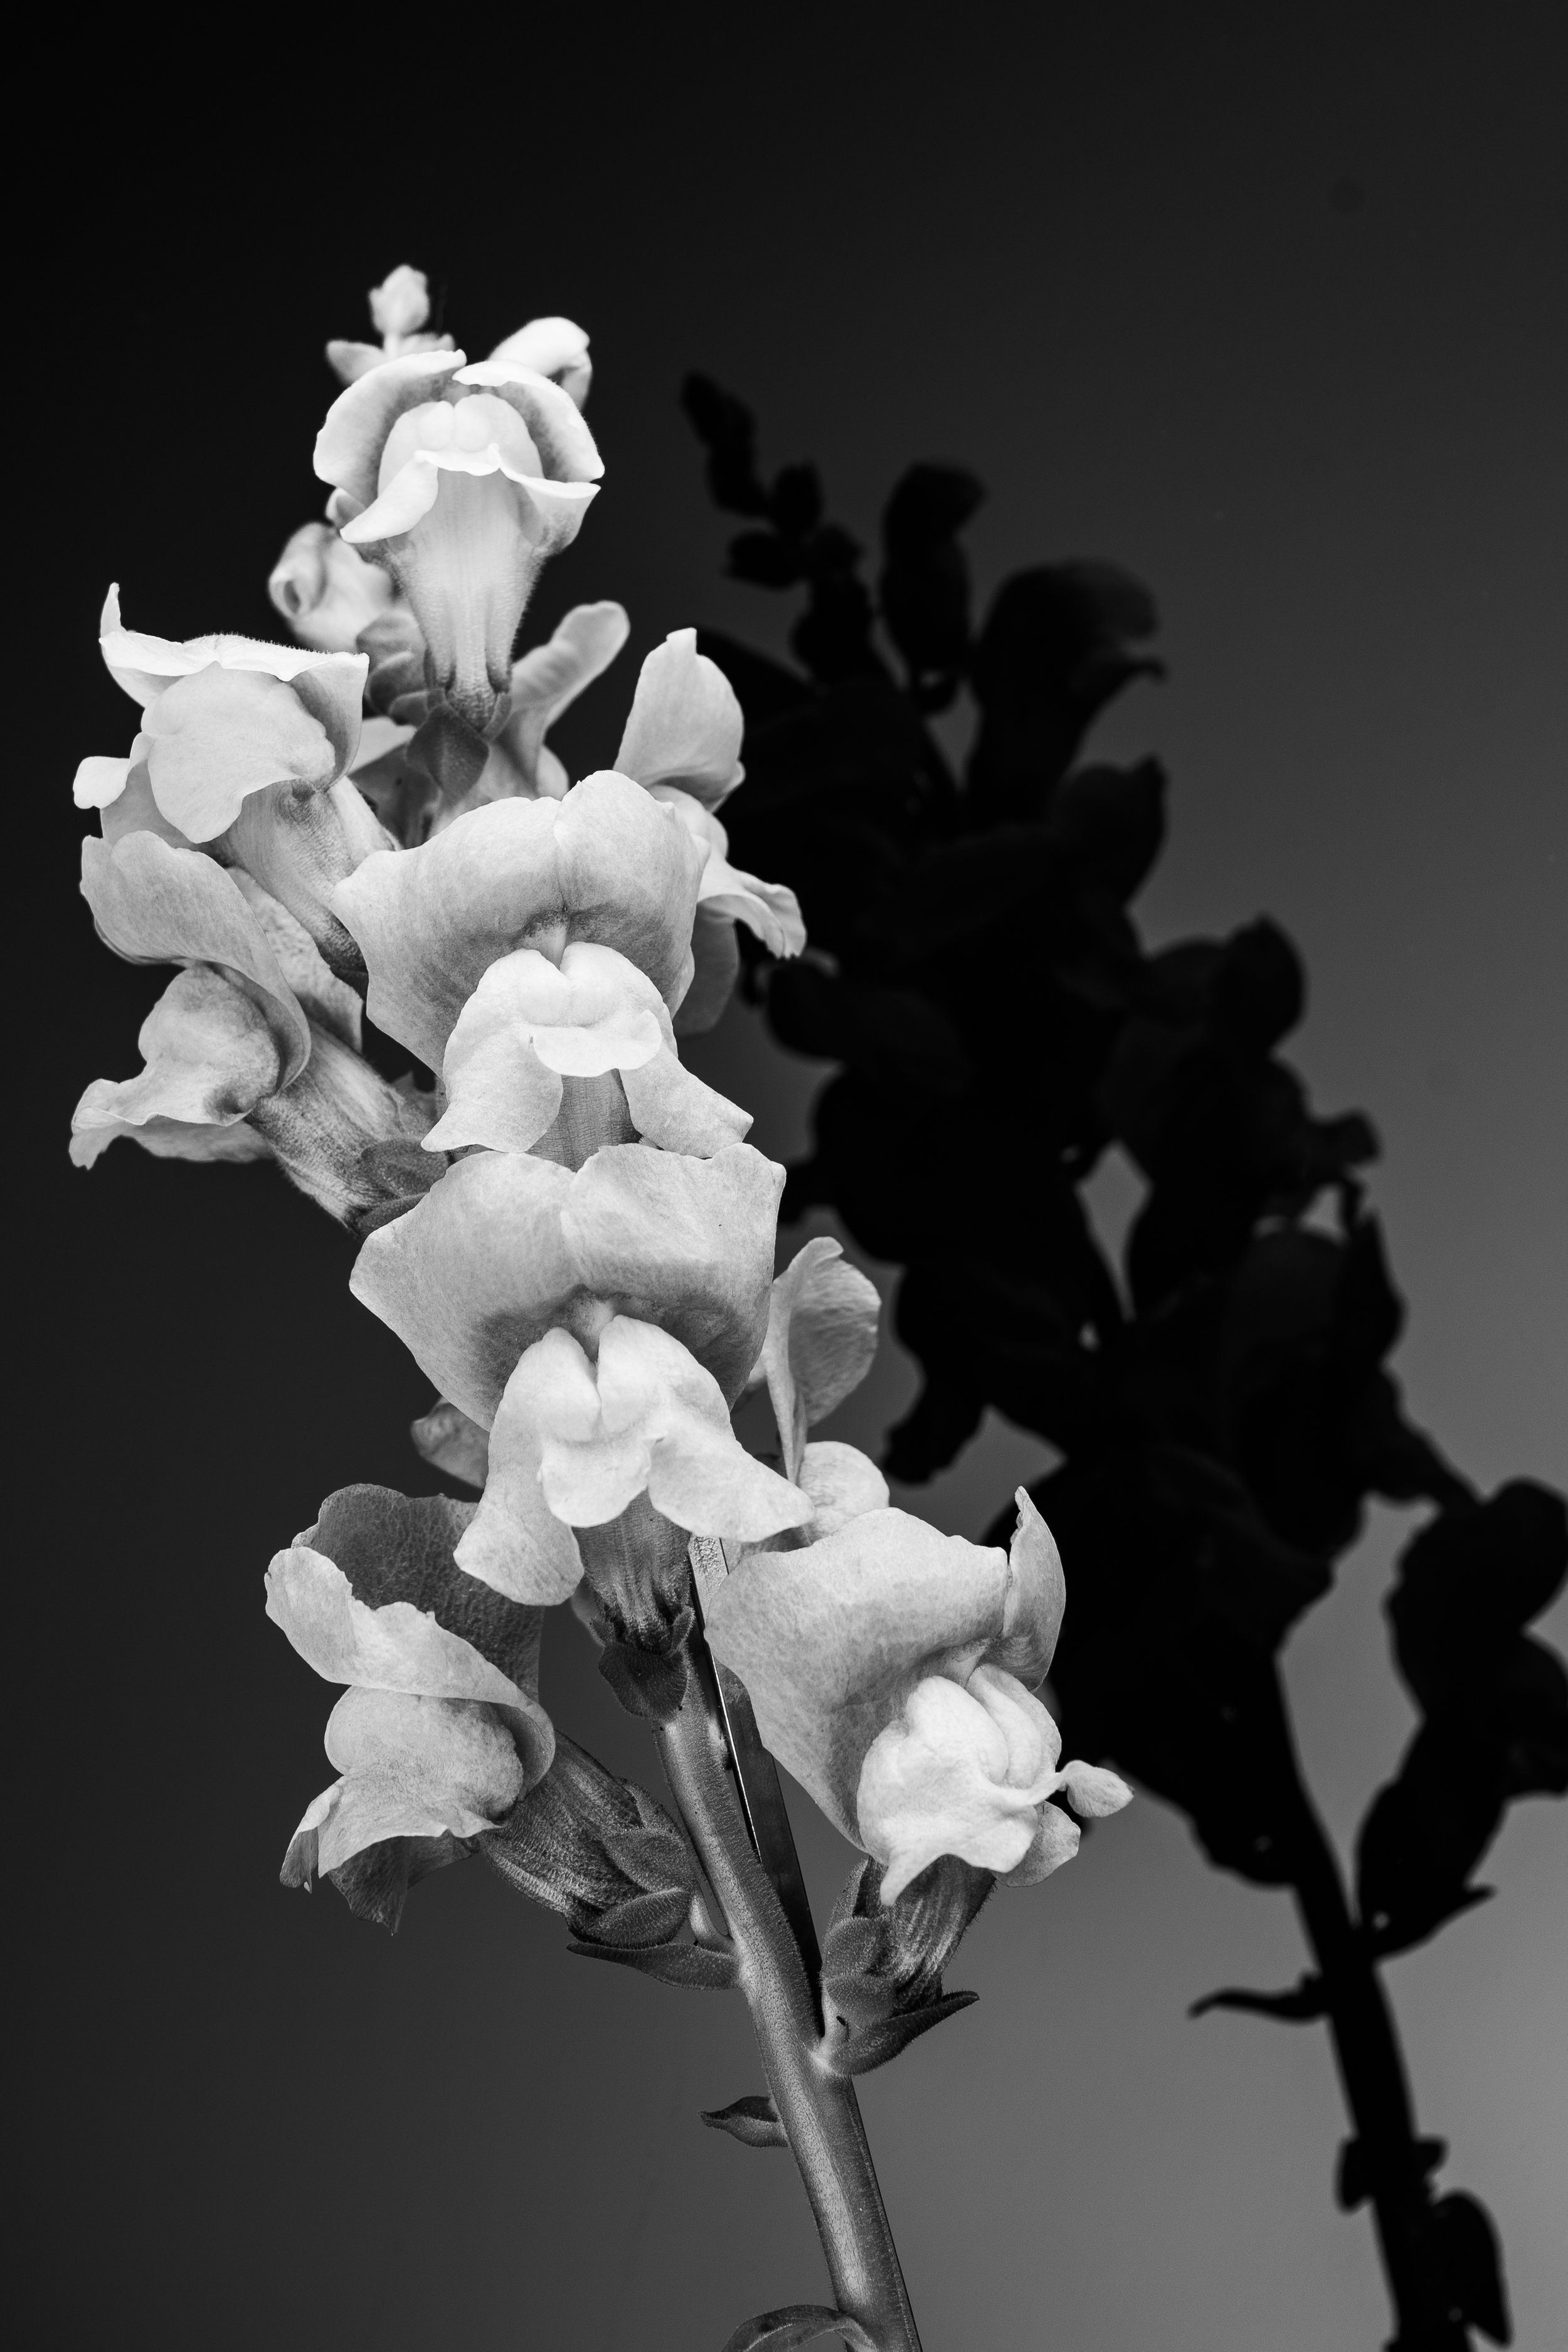 Flower_Black_and_White-1.jpg